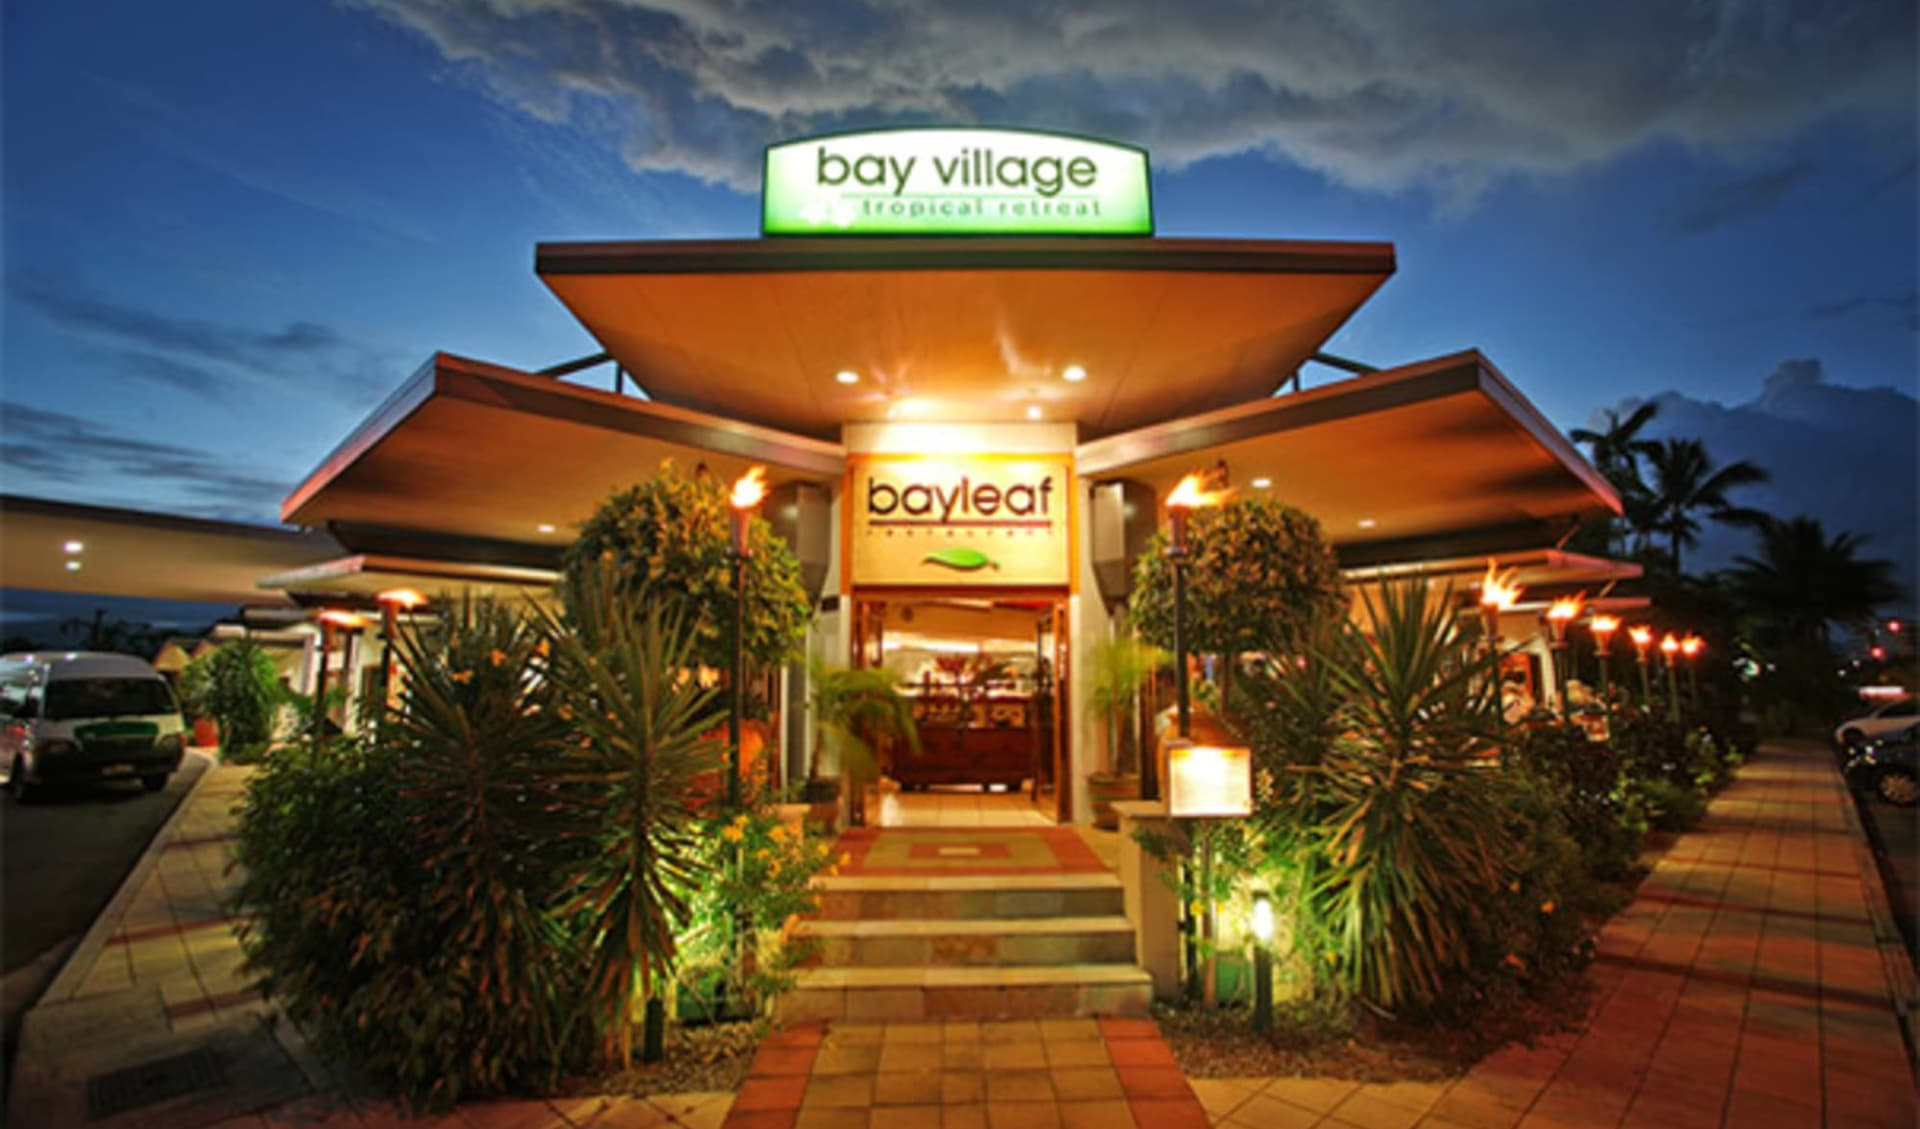 Bay Village Tropical Retreat in Cairns: Cairns_bay-village-tropical_entrance